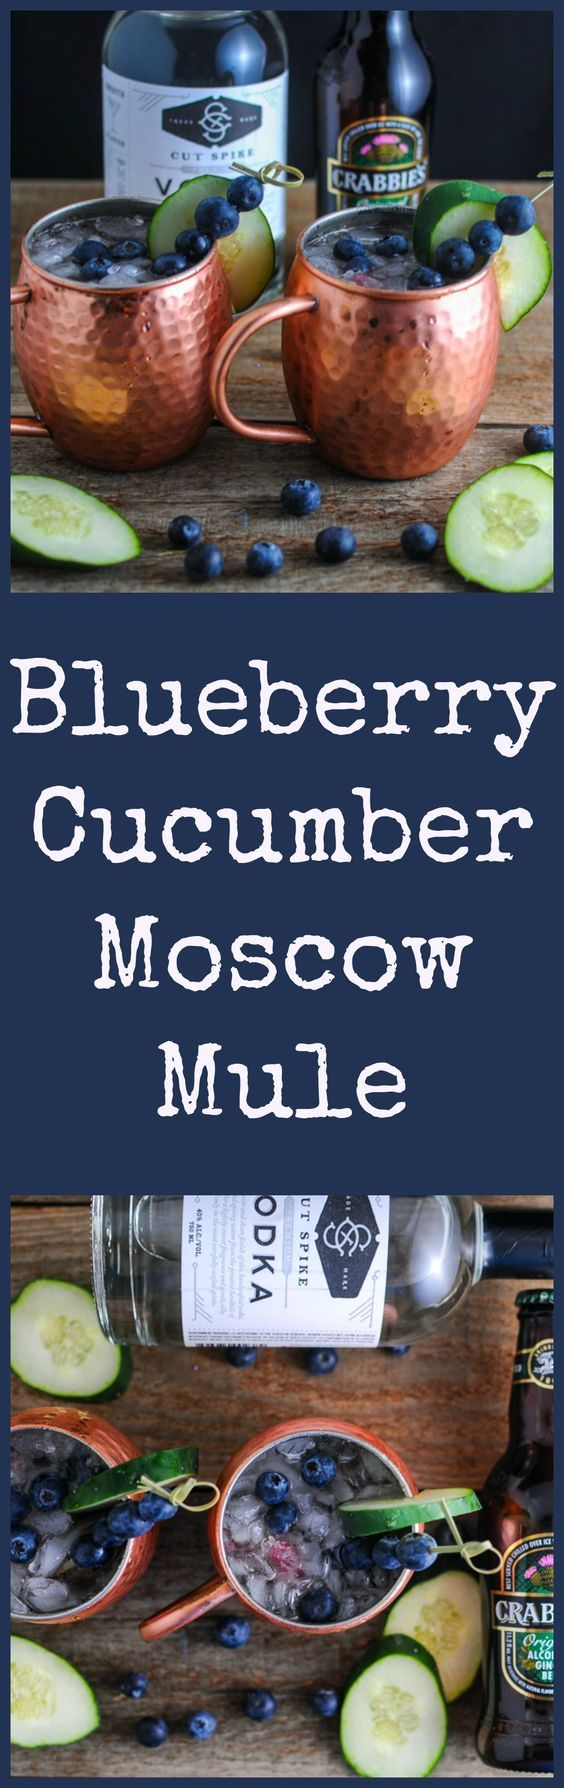 Blueberry Cucumber Moscow Mule - vodka, lime, ginger beer, cocktail drink, recipe, classic, variation, blueberries